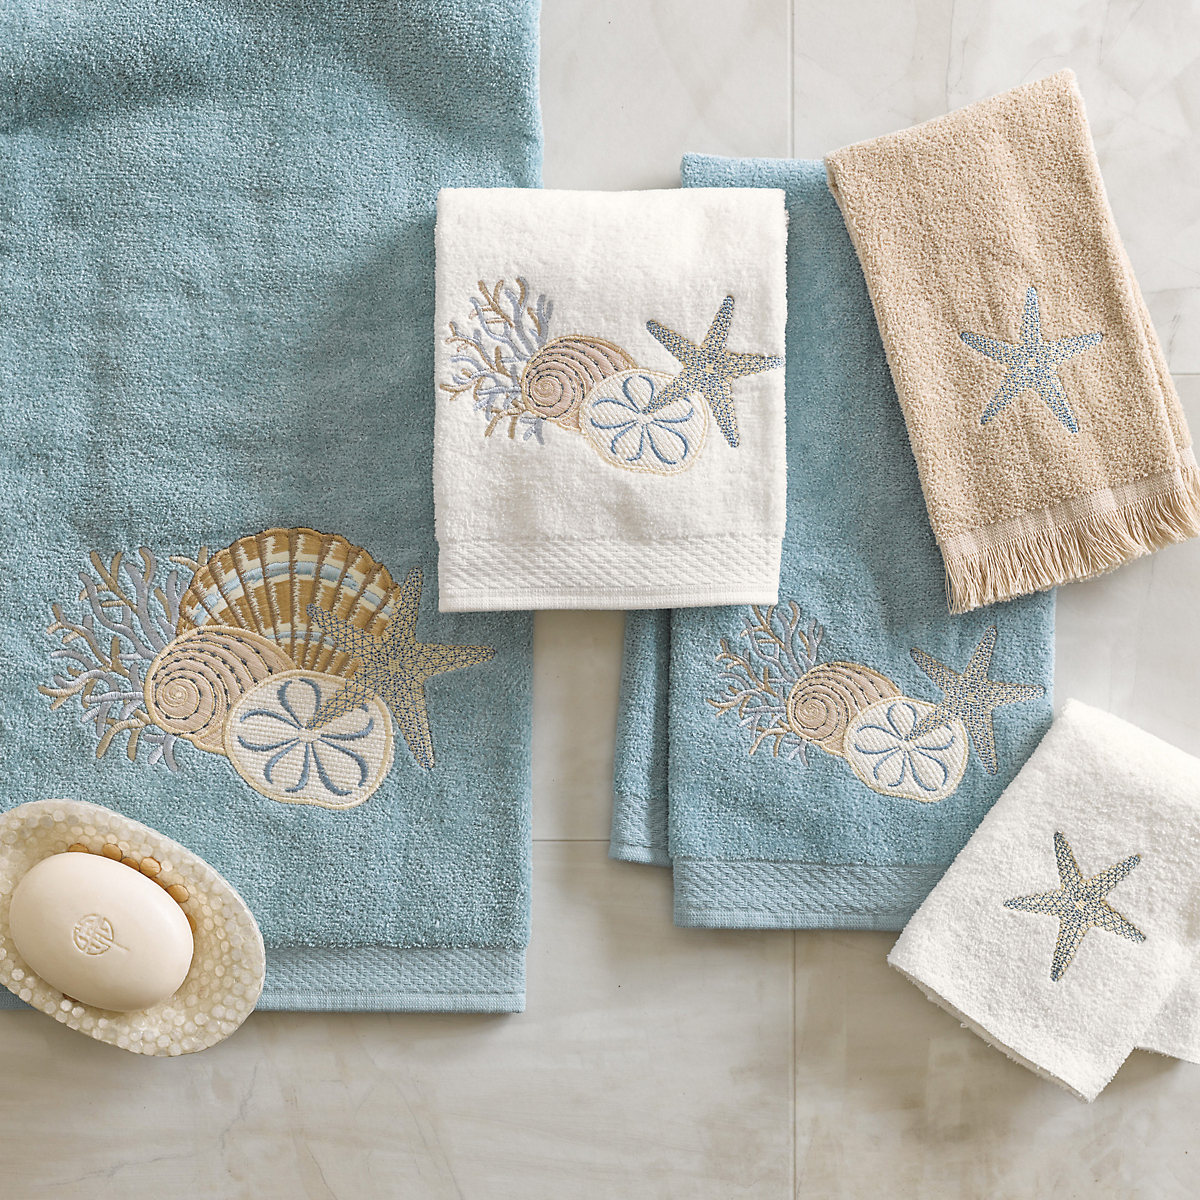 Seashore Embroidered Towels